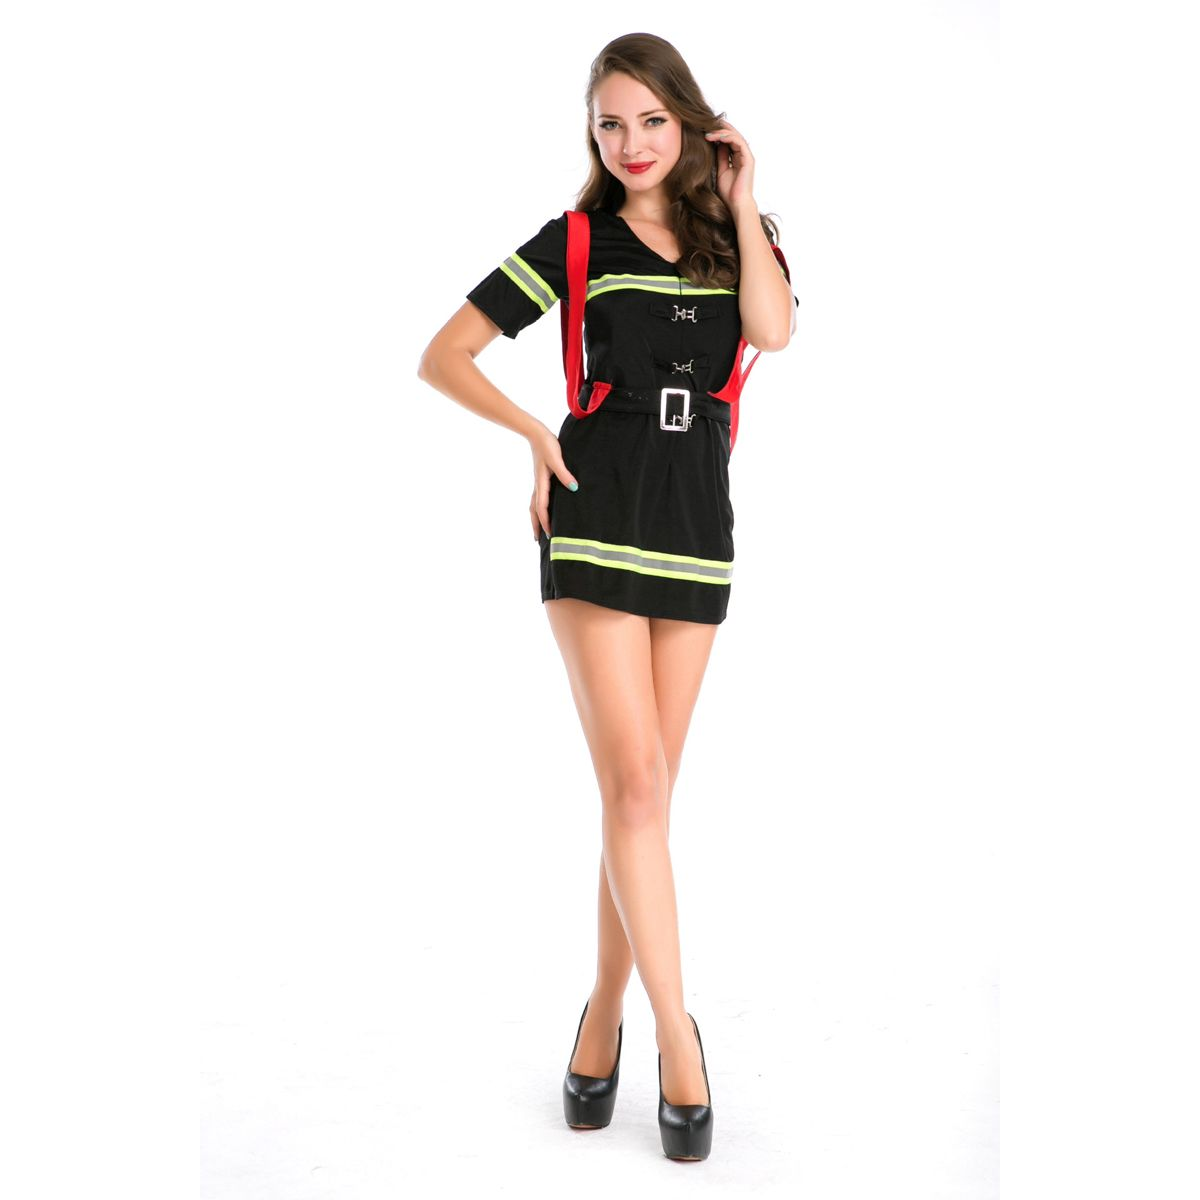 women's firewoman uniform cop costumes halloween party stage police